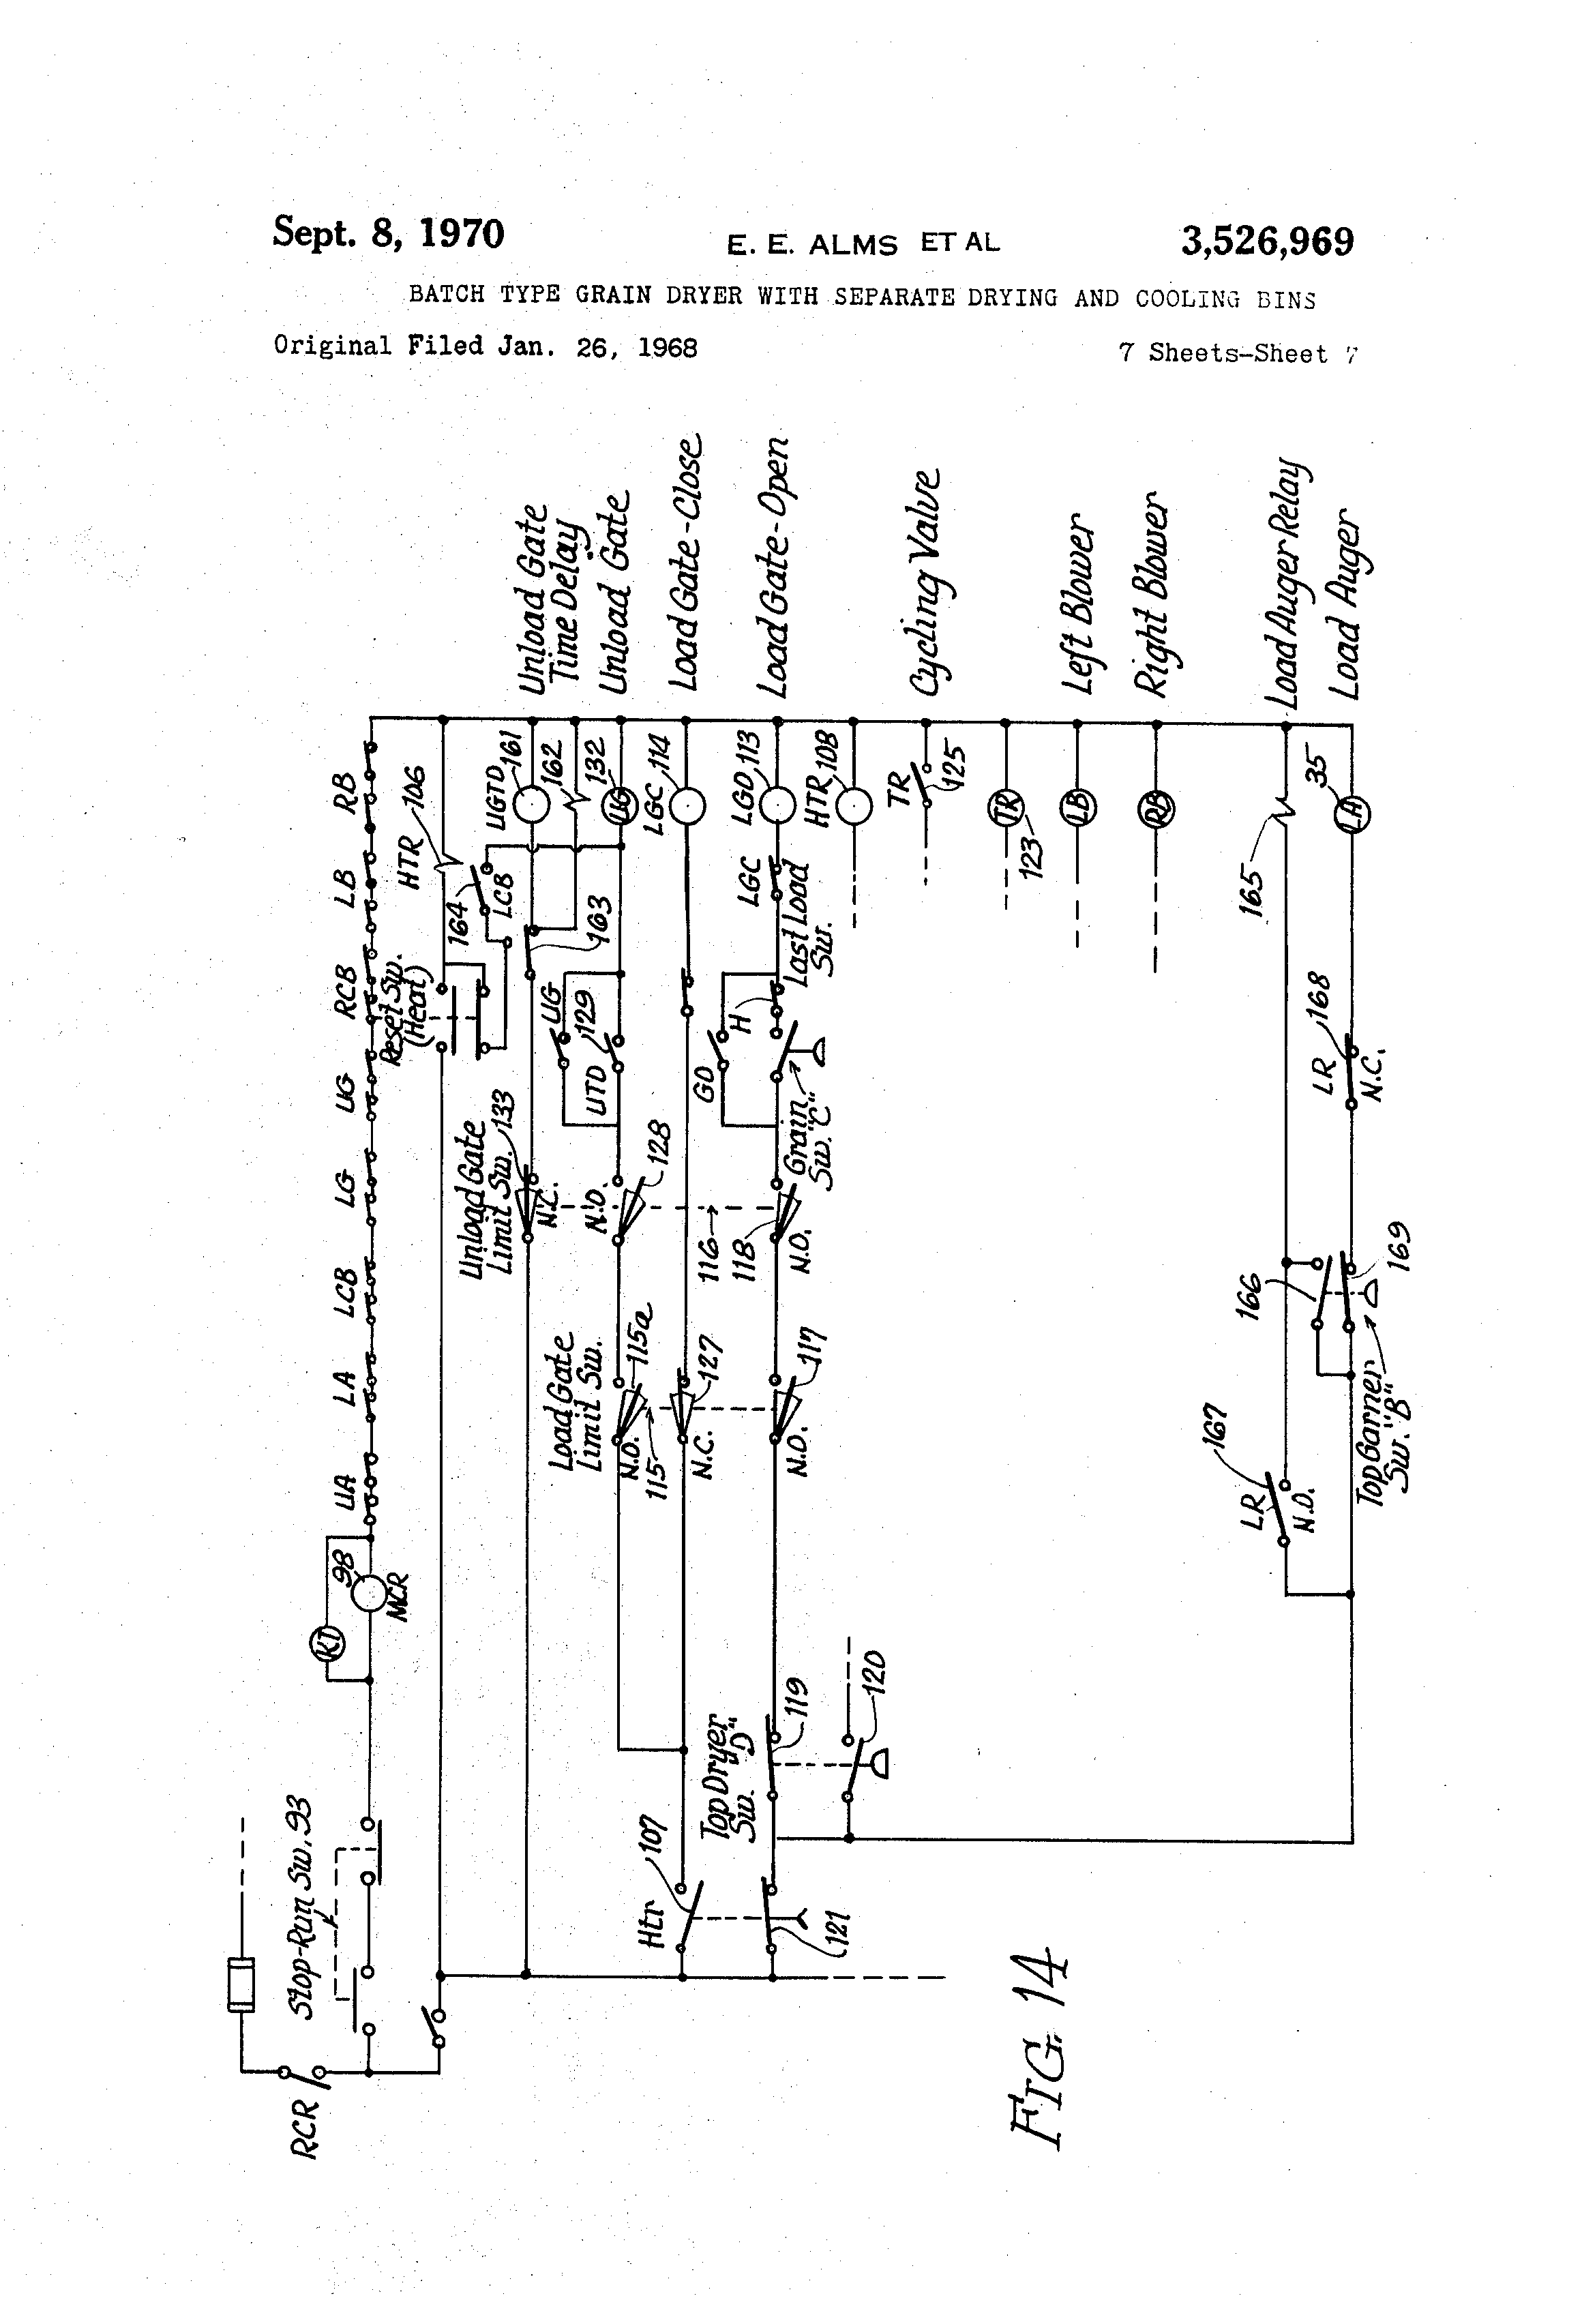 Patent Us3526969 - Batch Type Grain Dryer With Separate Drying And Cooling Bins